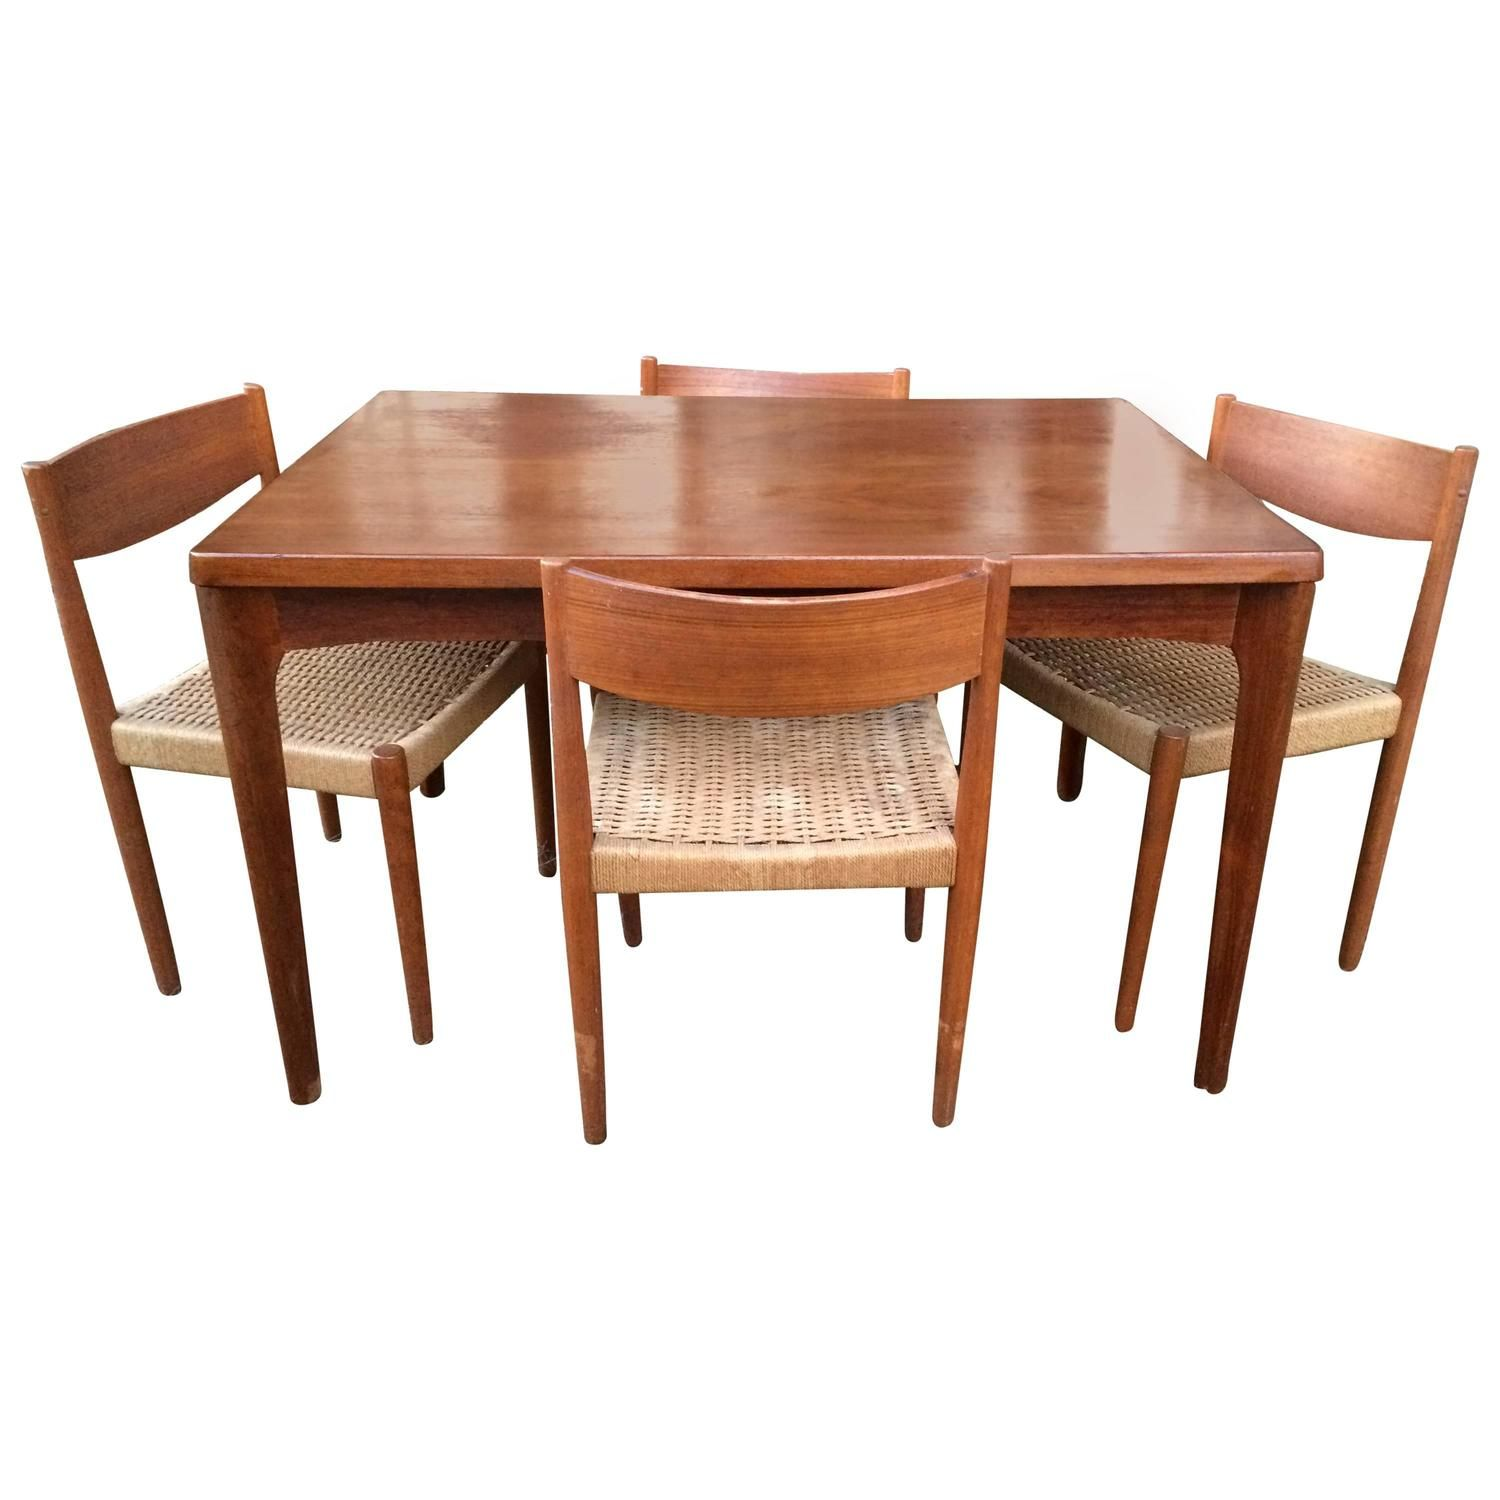 Danish Modern Extendable Teak Dining Table with Woven Chairs ...